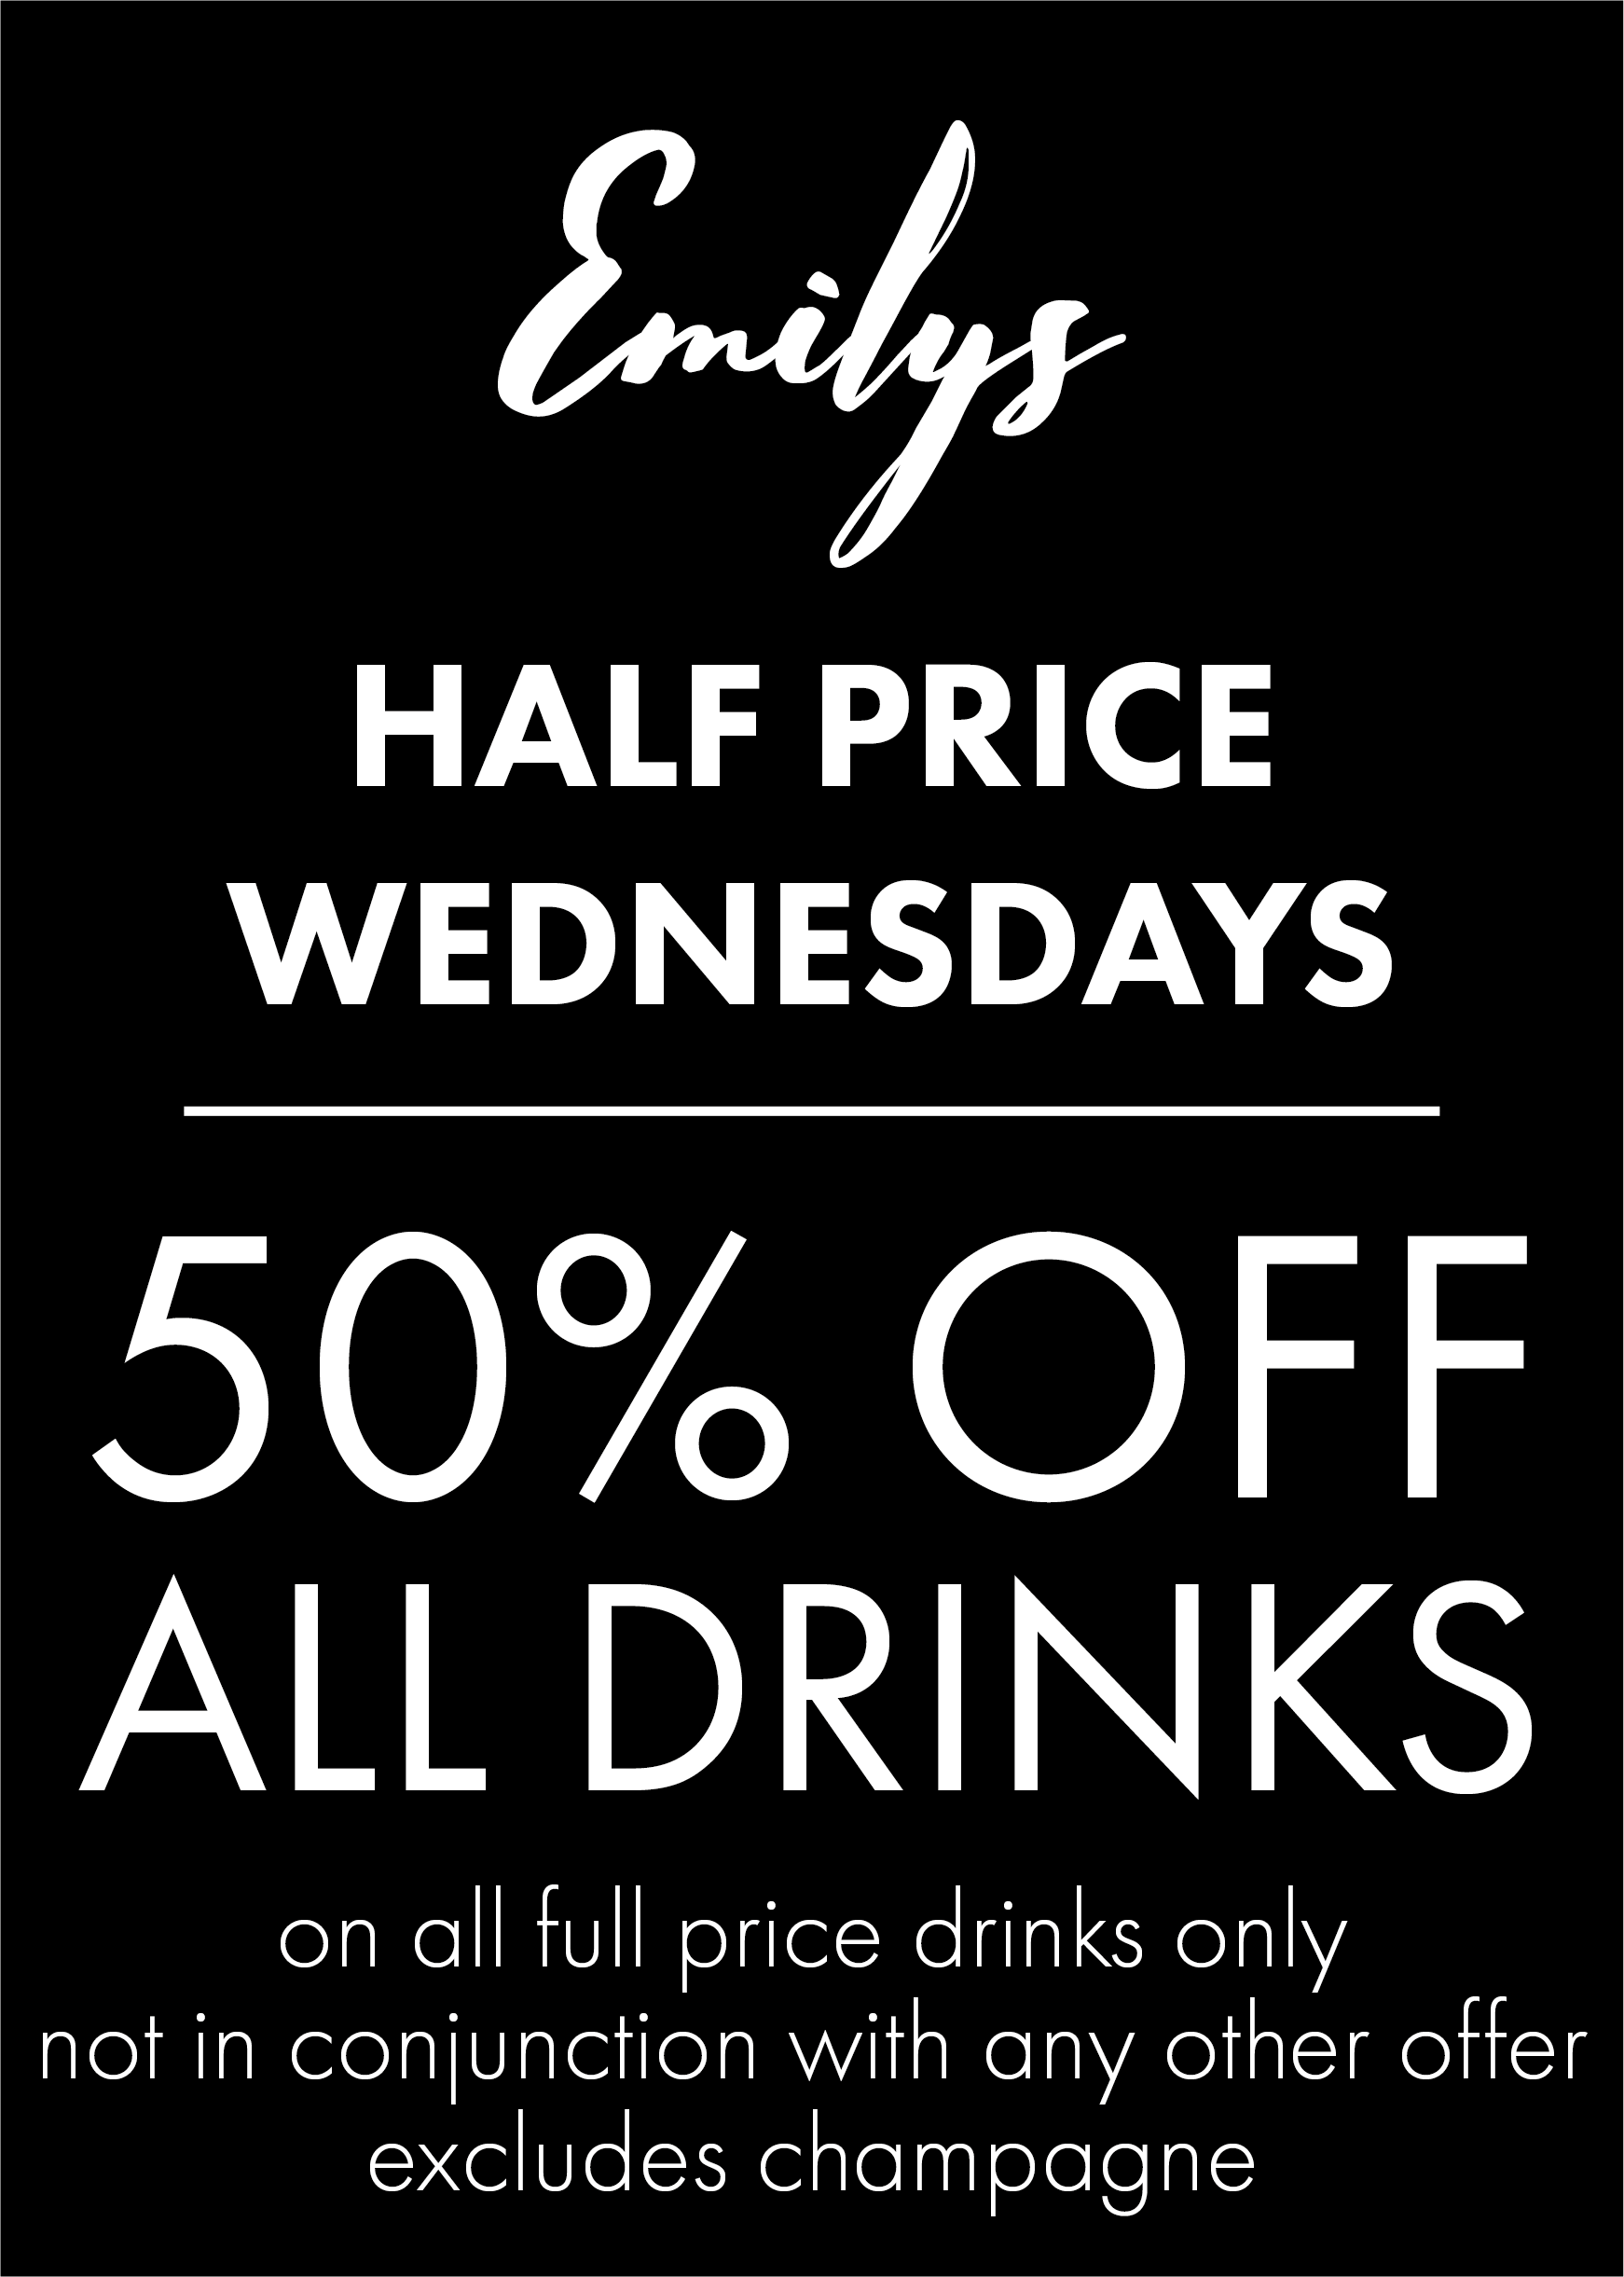 50% OFF ALL DRINKS